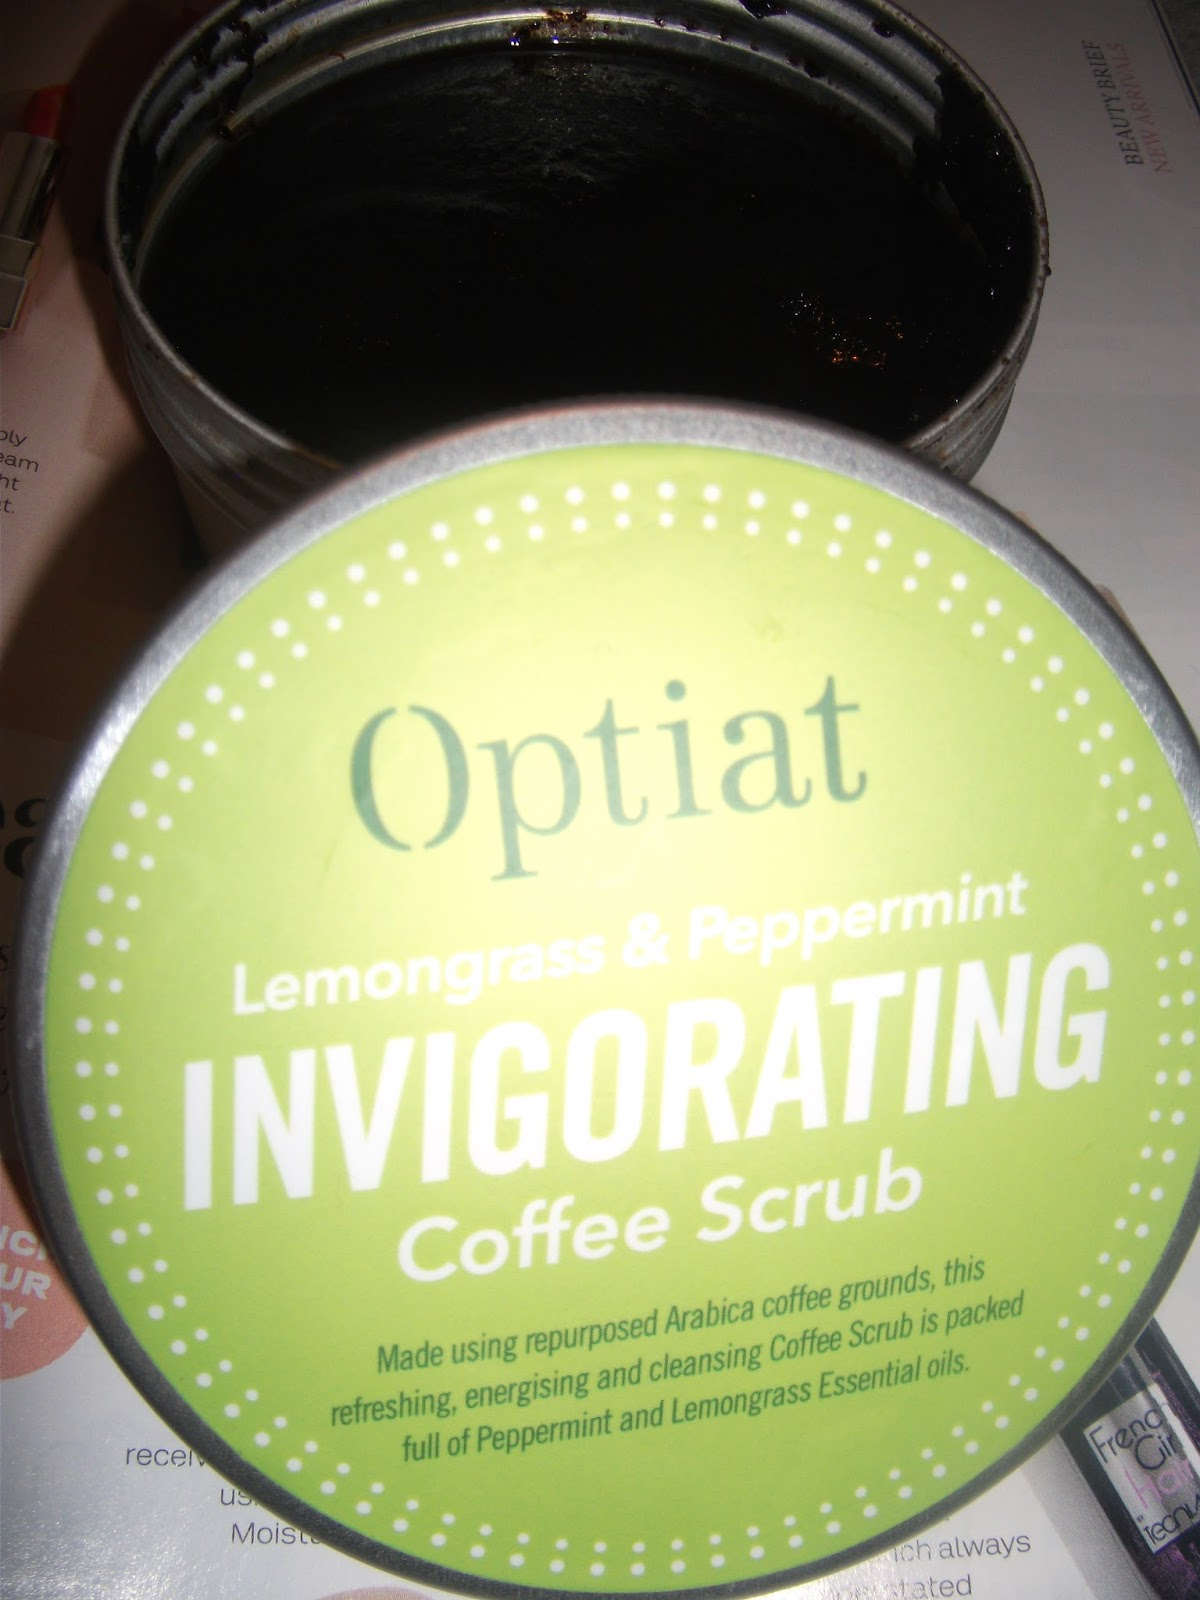 Jumping On The Coffeescrub Trend With Optiat Sunshinesarahxo